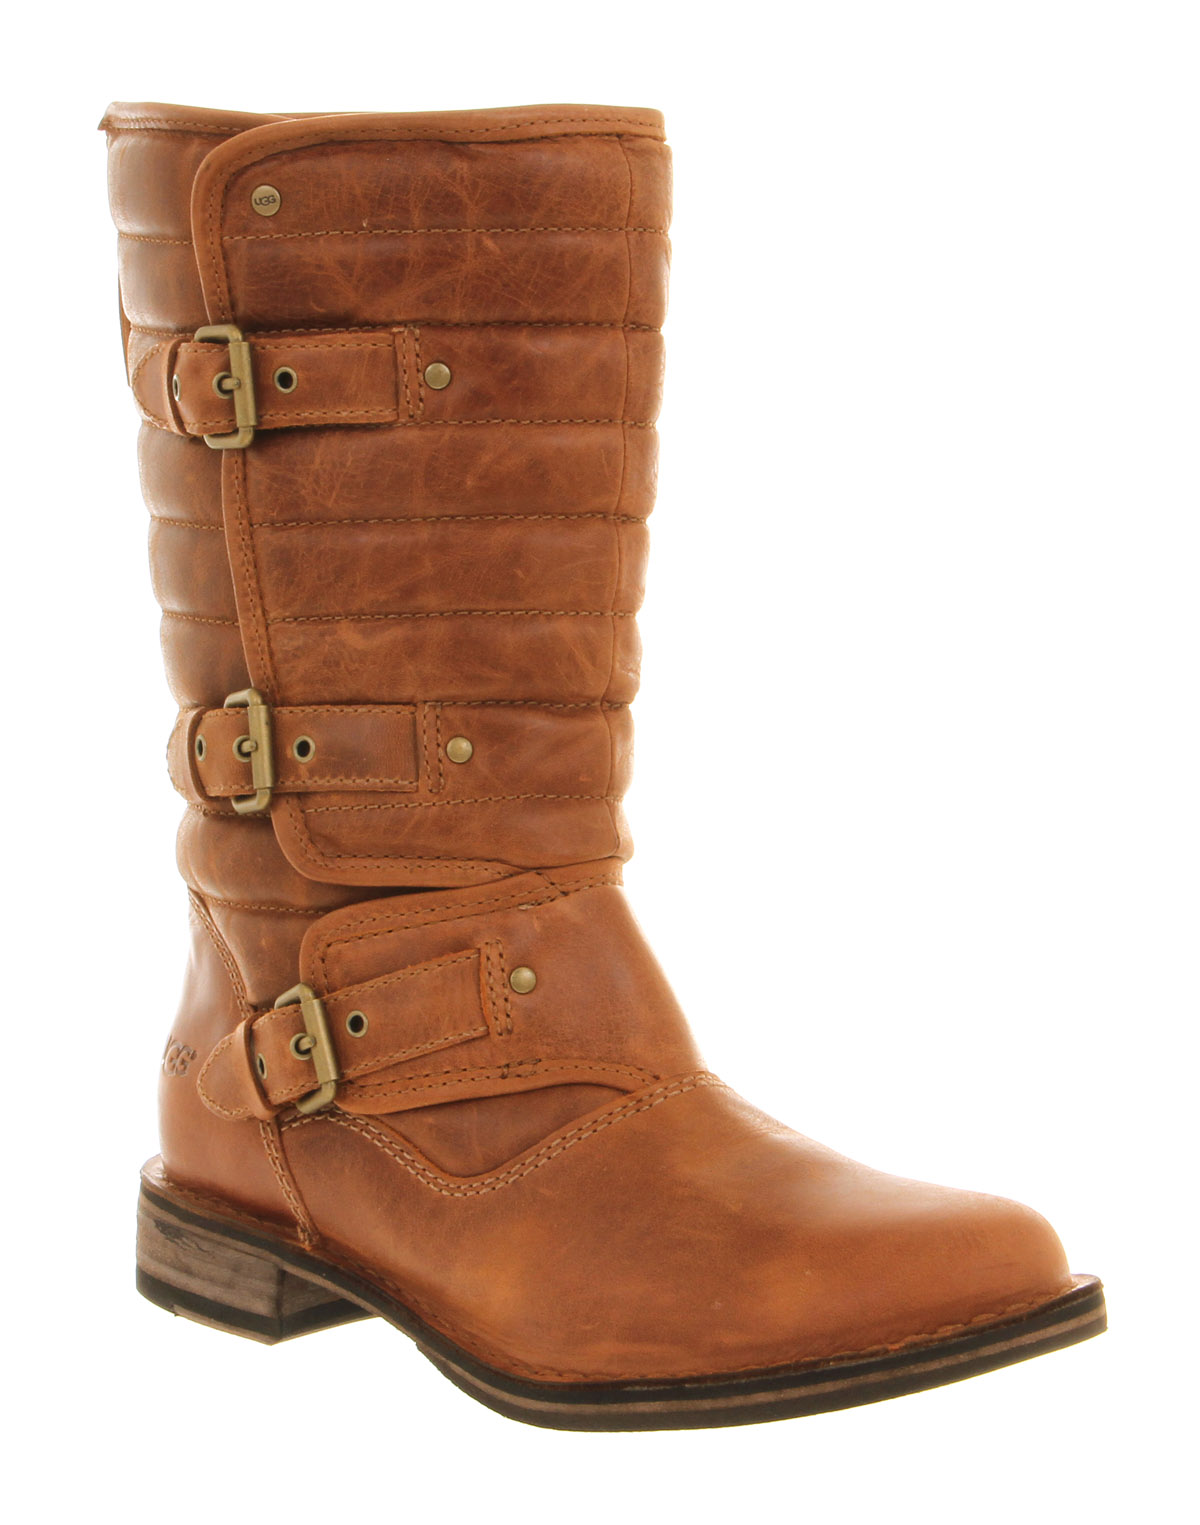 chestnut leather uggs